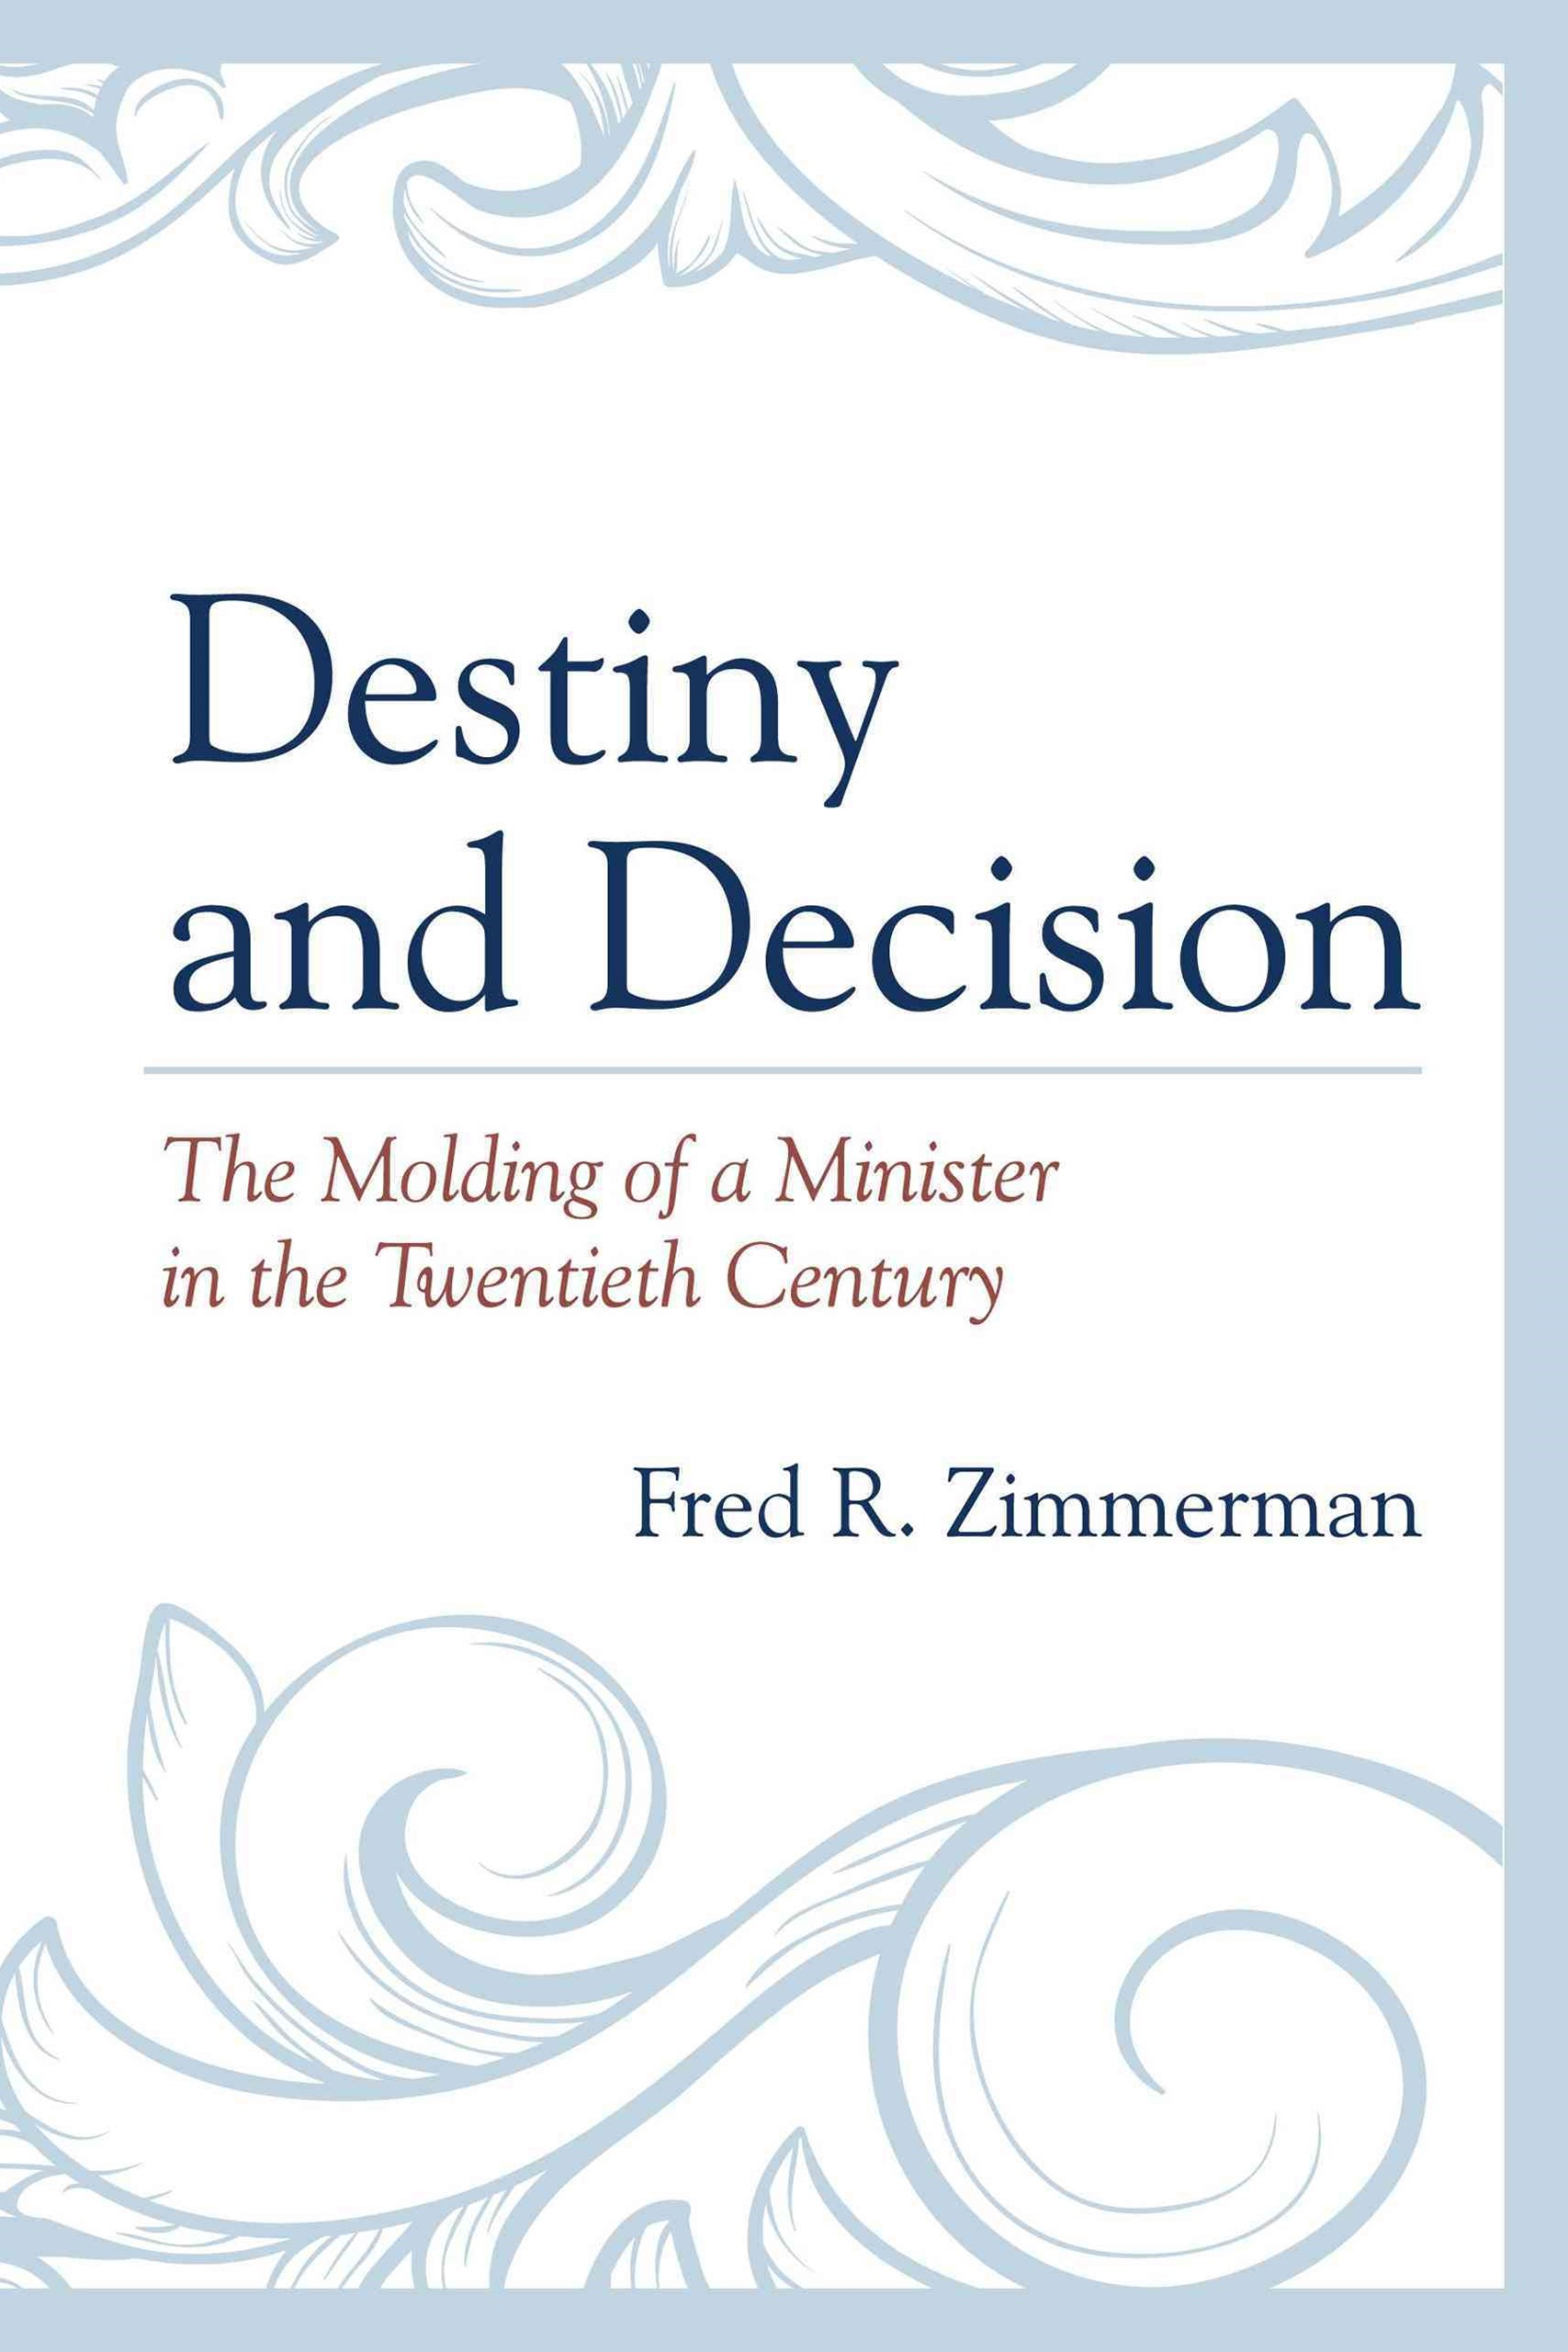 Destiny and Decision